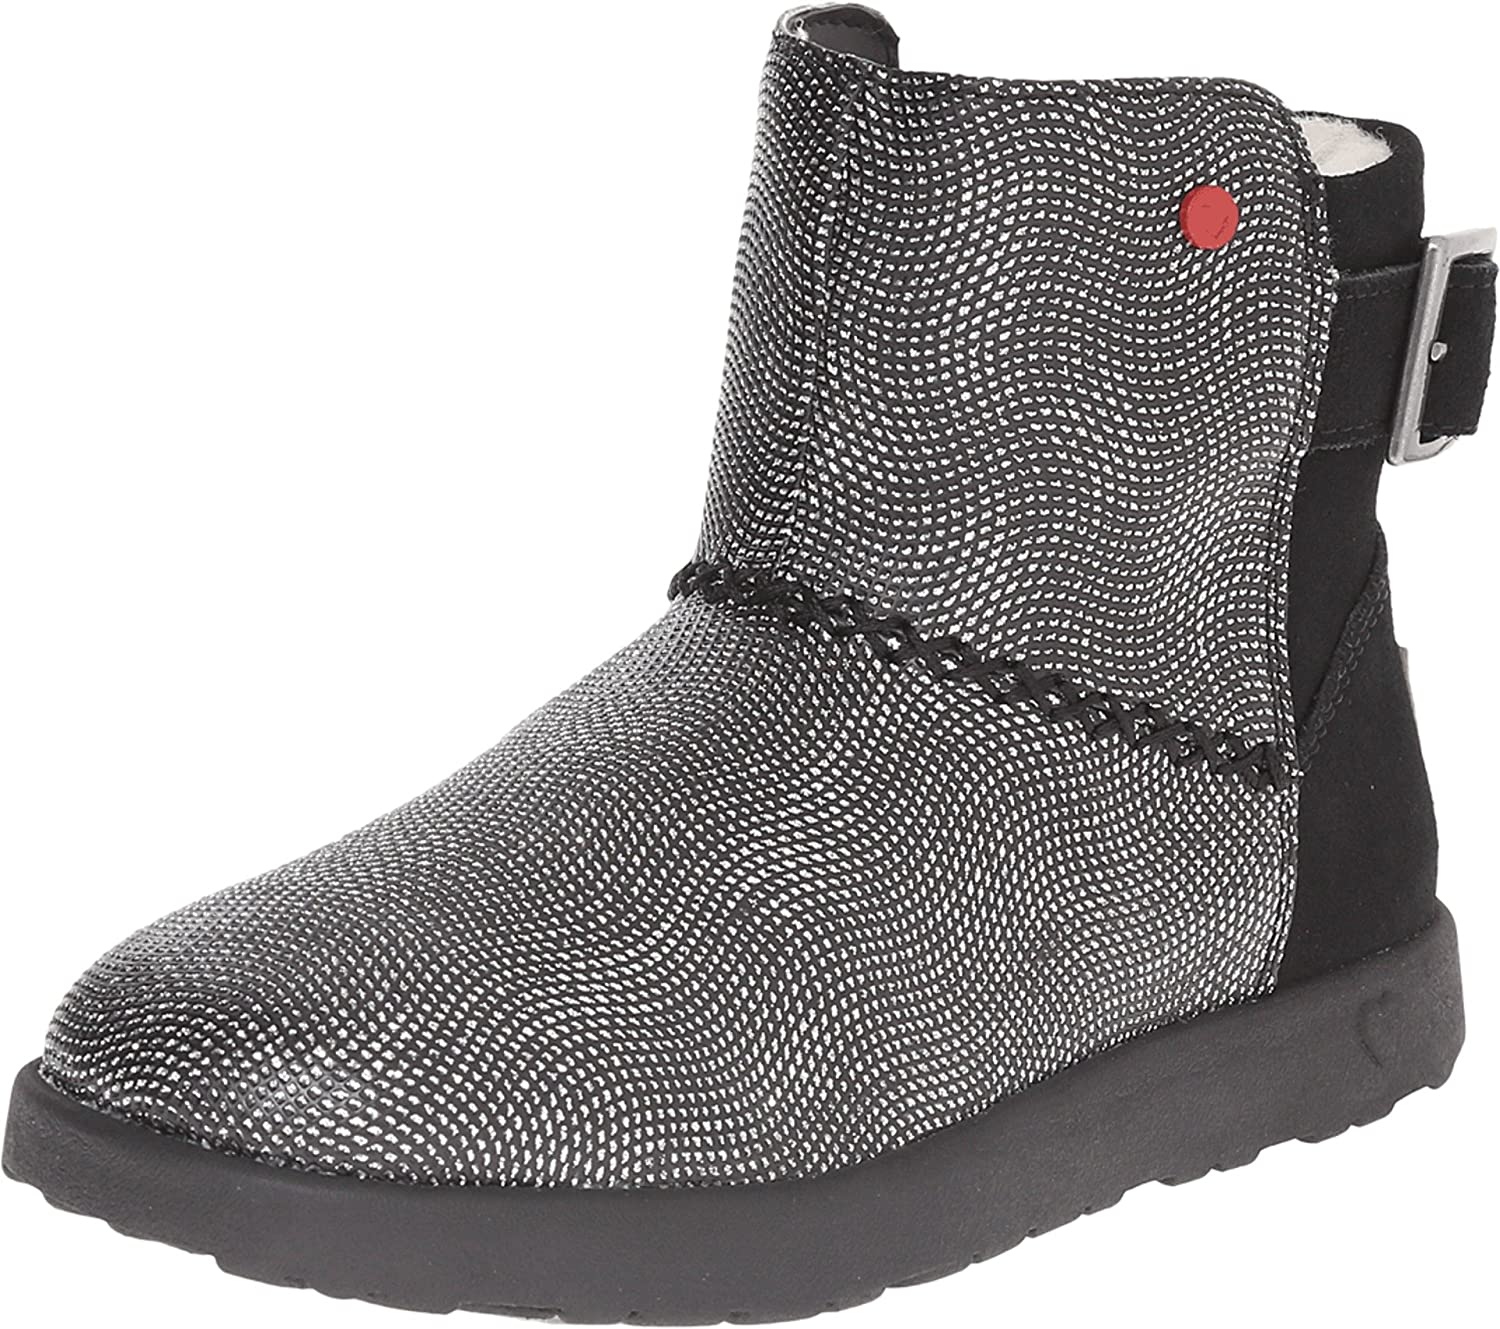 84a2657cb65 Amazon.com: UGG Kids Girl's IVY Geometric (Little Kid/Big Kid) Black ...